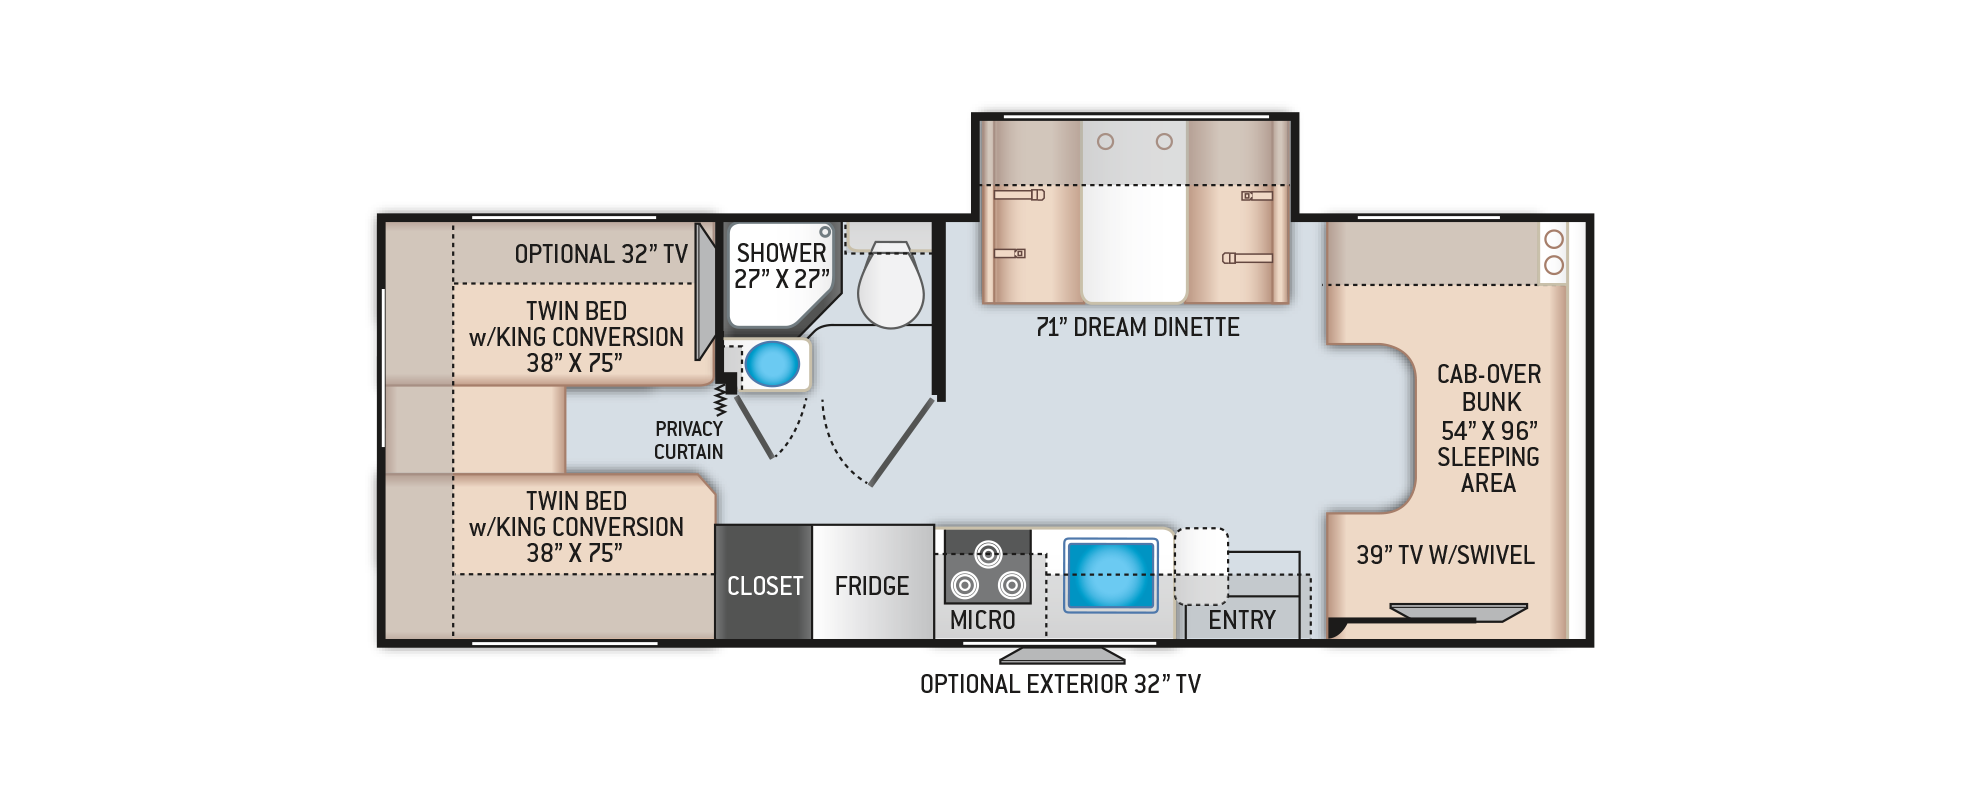 Four Winds Class C Motorhome 25V Floor Plan